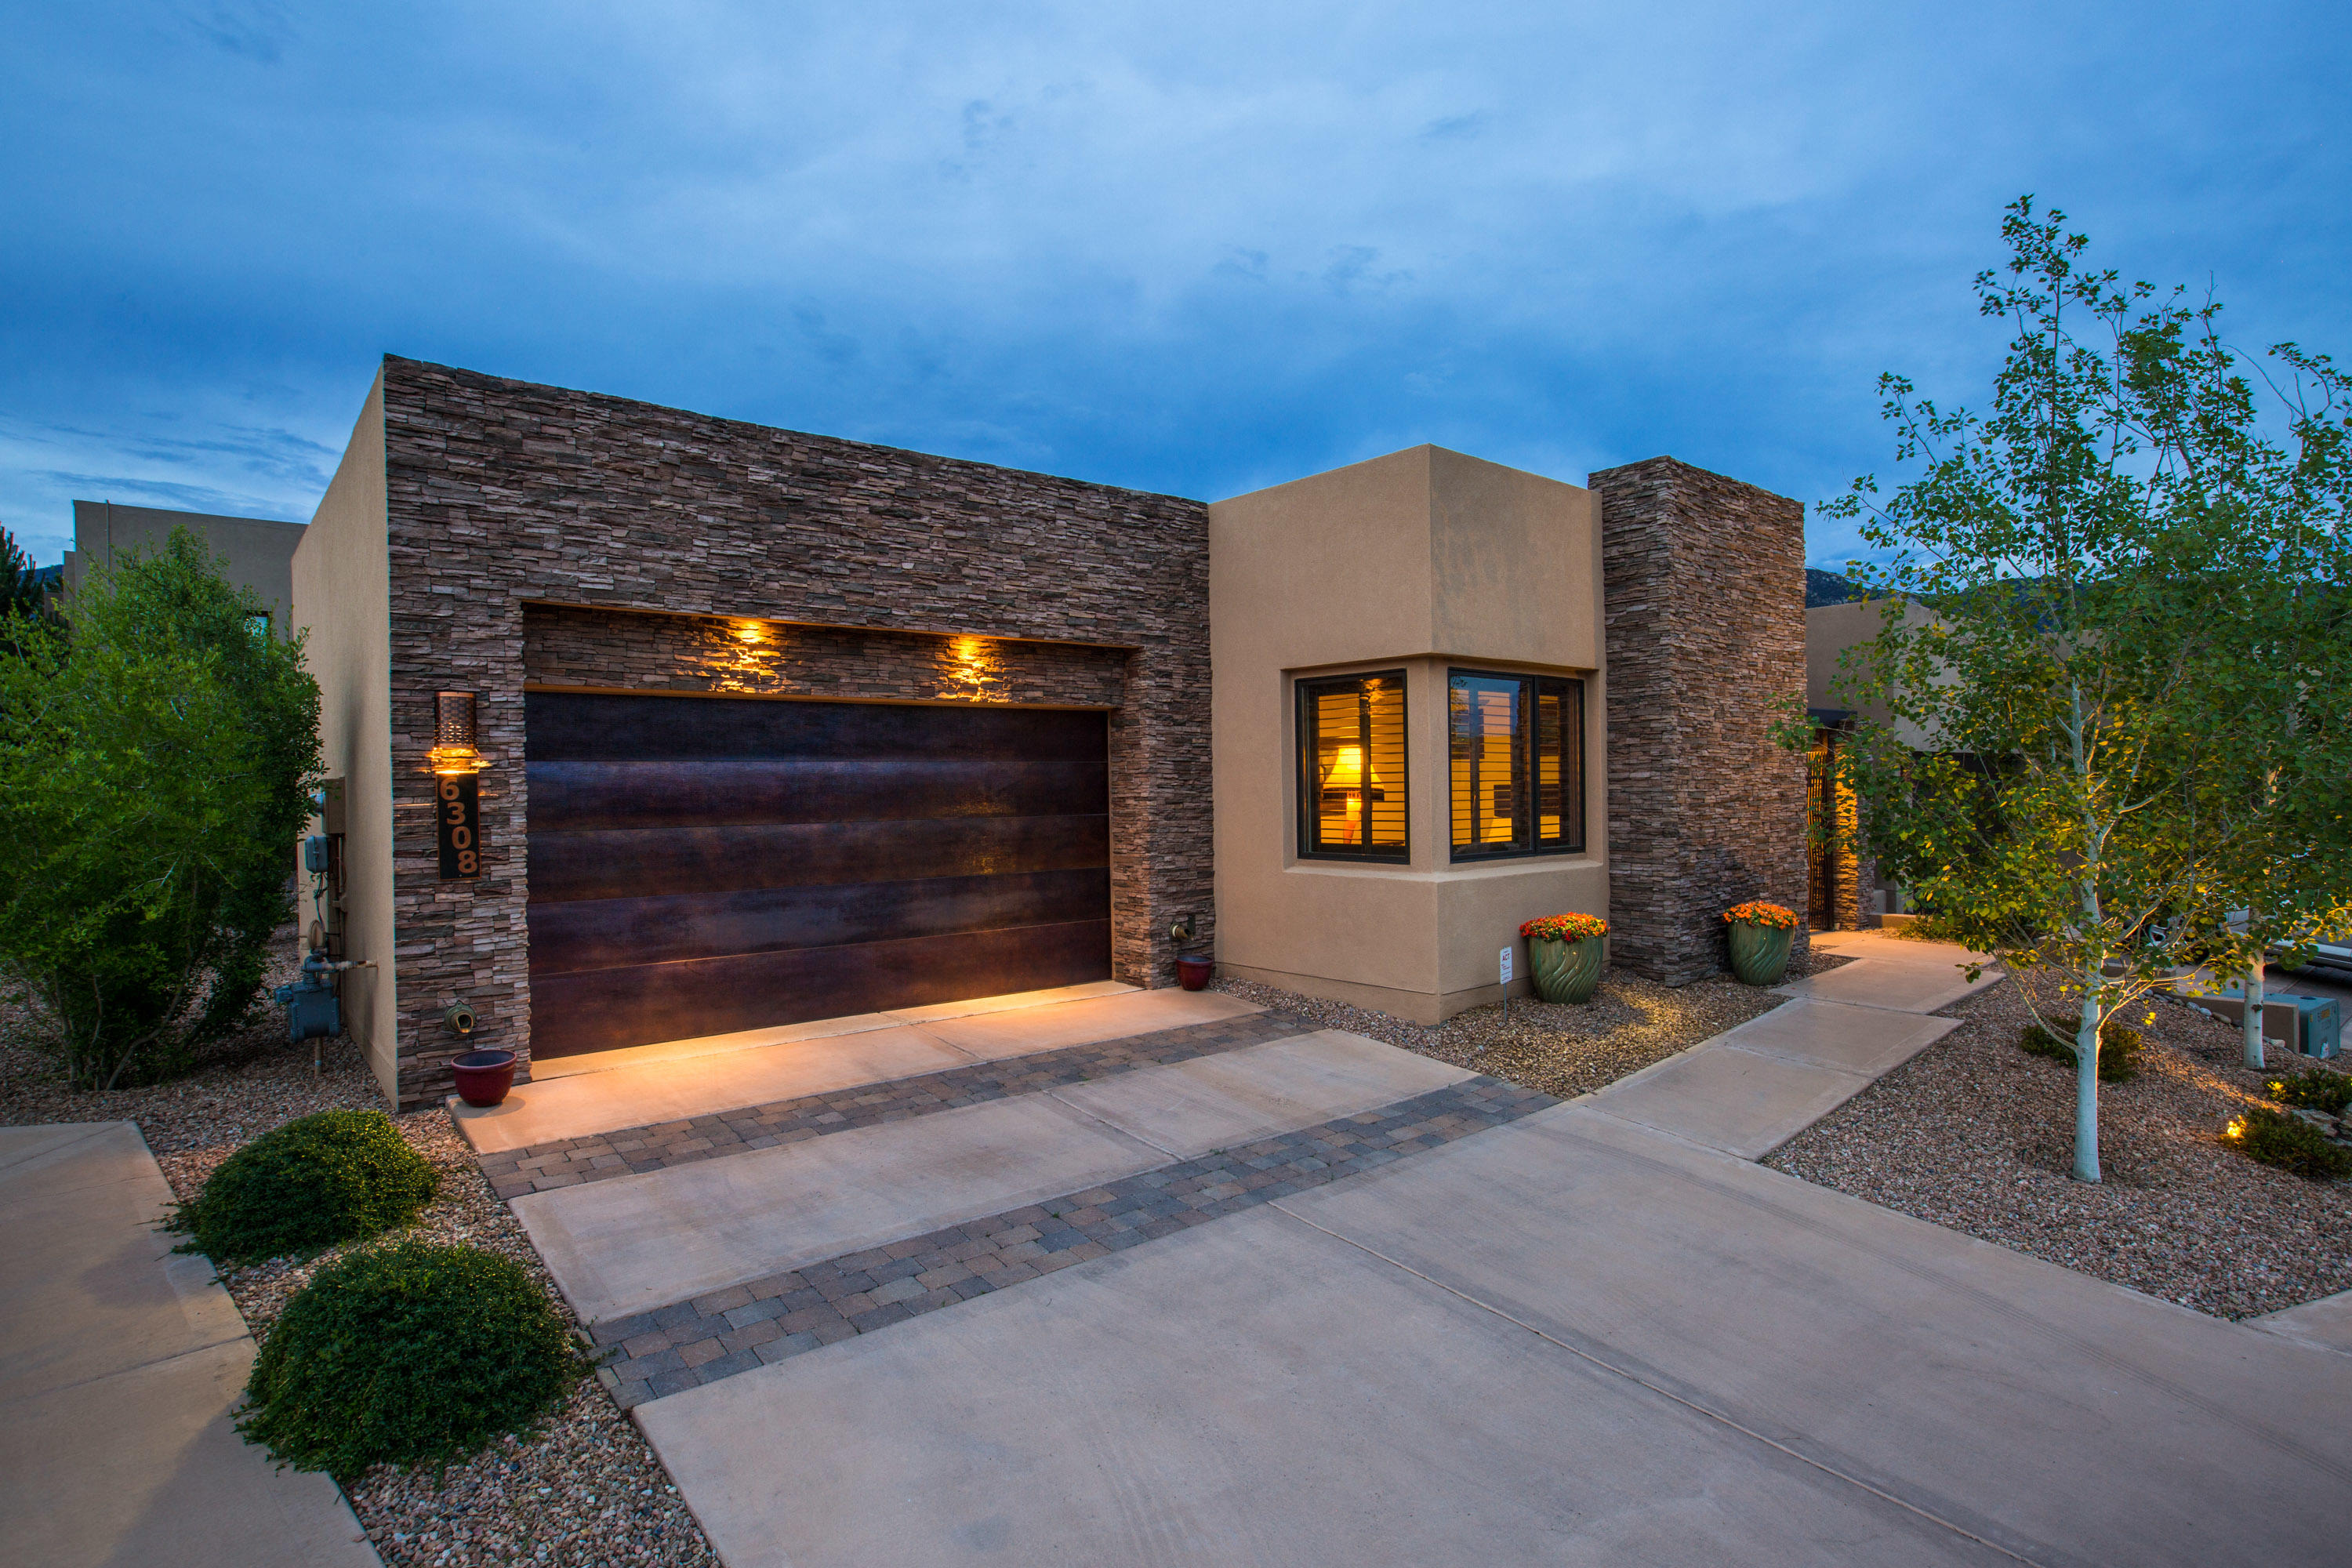 Welcome home to the Legends at High Desert! This Gorgeous Contemporary Twist on a southwest home has been lovingly updated with attention to detail rarely found. Perfectly situated in the Heart of the Gated Community this home is minutes from the finest hiking & biking trails the Foot Hills have to offer. Smart Single Story Floor Plan is great for entertaining. High End Finishes include custom light fixtures, Stacked Stone Fireplace, Alder Hardwood Kitchen Island Top & Range Hood surround. Timeless Wood-Look Tile Floors, Pella Windows & Bosch Appliances. Spacious Owner's Suite boasts private access to Quaint Backyard Patio, Walk-in Shower, Separate Soaking Tub & Dual Vanities. Owner's closet is ''Next-Level'' & Perfect to Showcase your Manicured Wardrobe. Rare opportunity in the Legends!